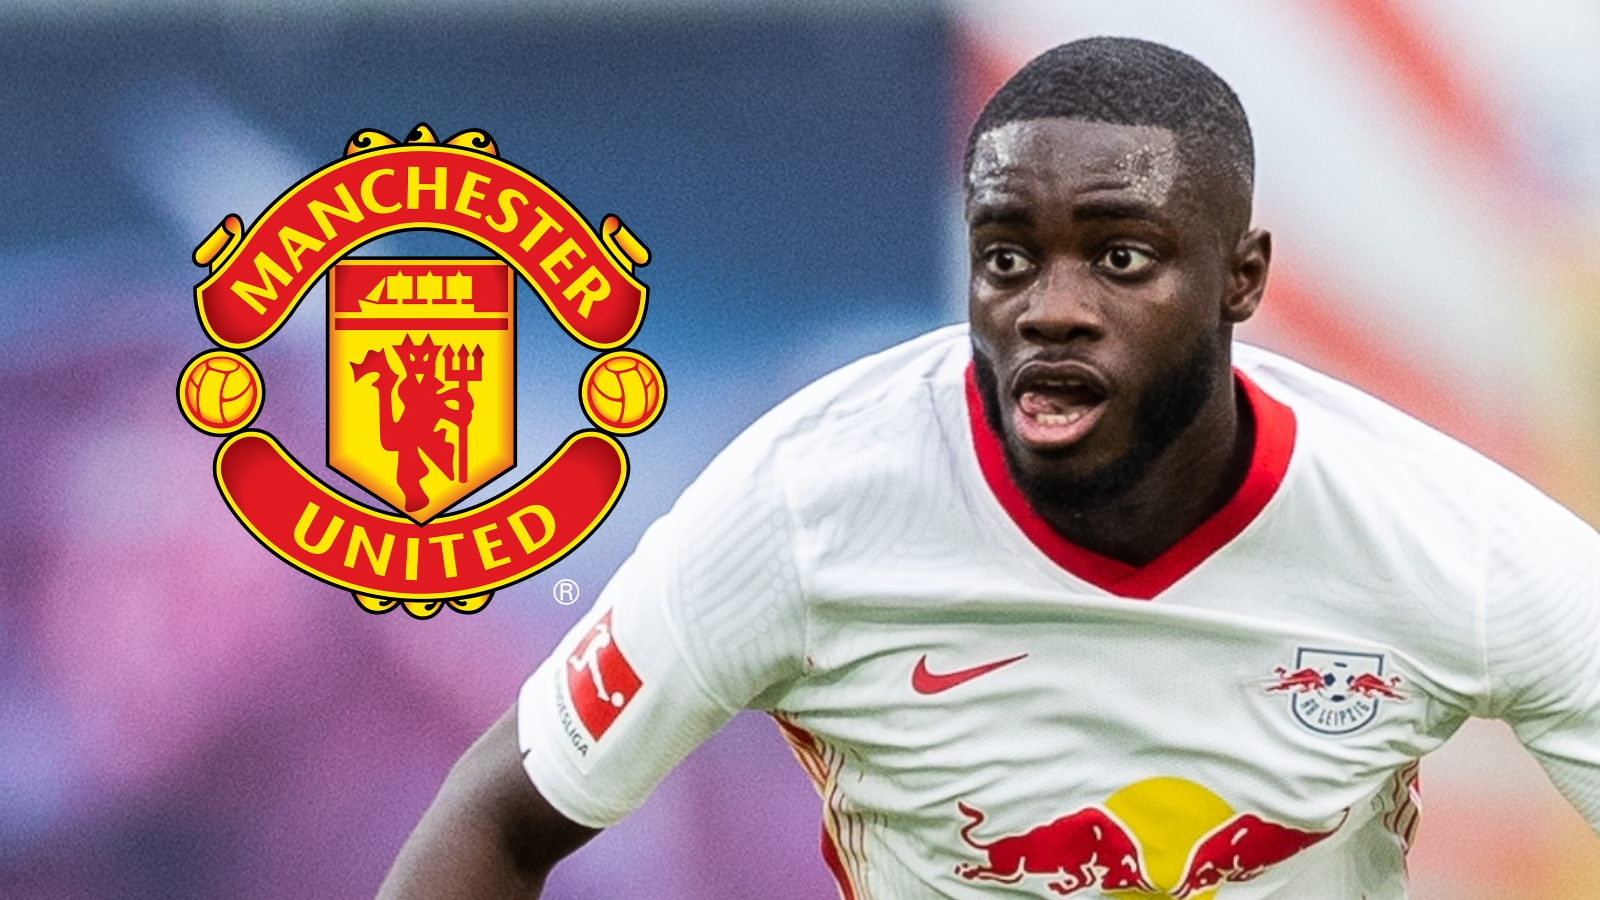 RB Leipzig hint they're willing to listen to offers for Man Utd & Liverpool-linked Upamecano